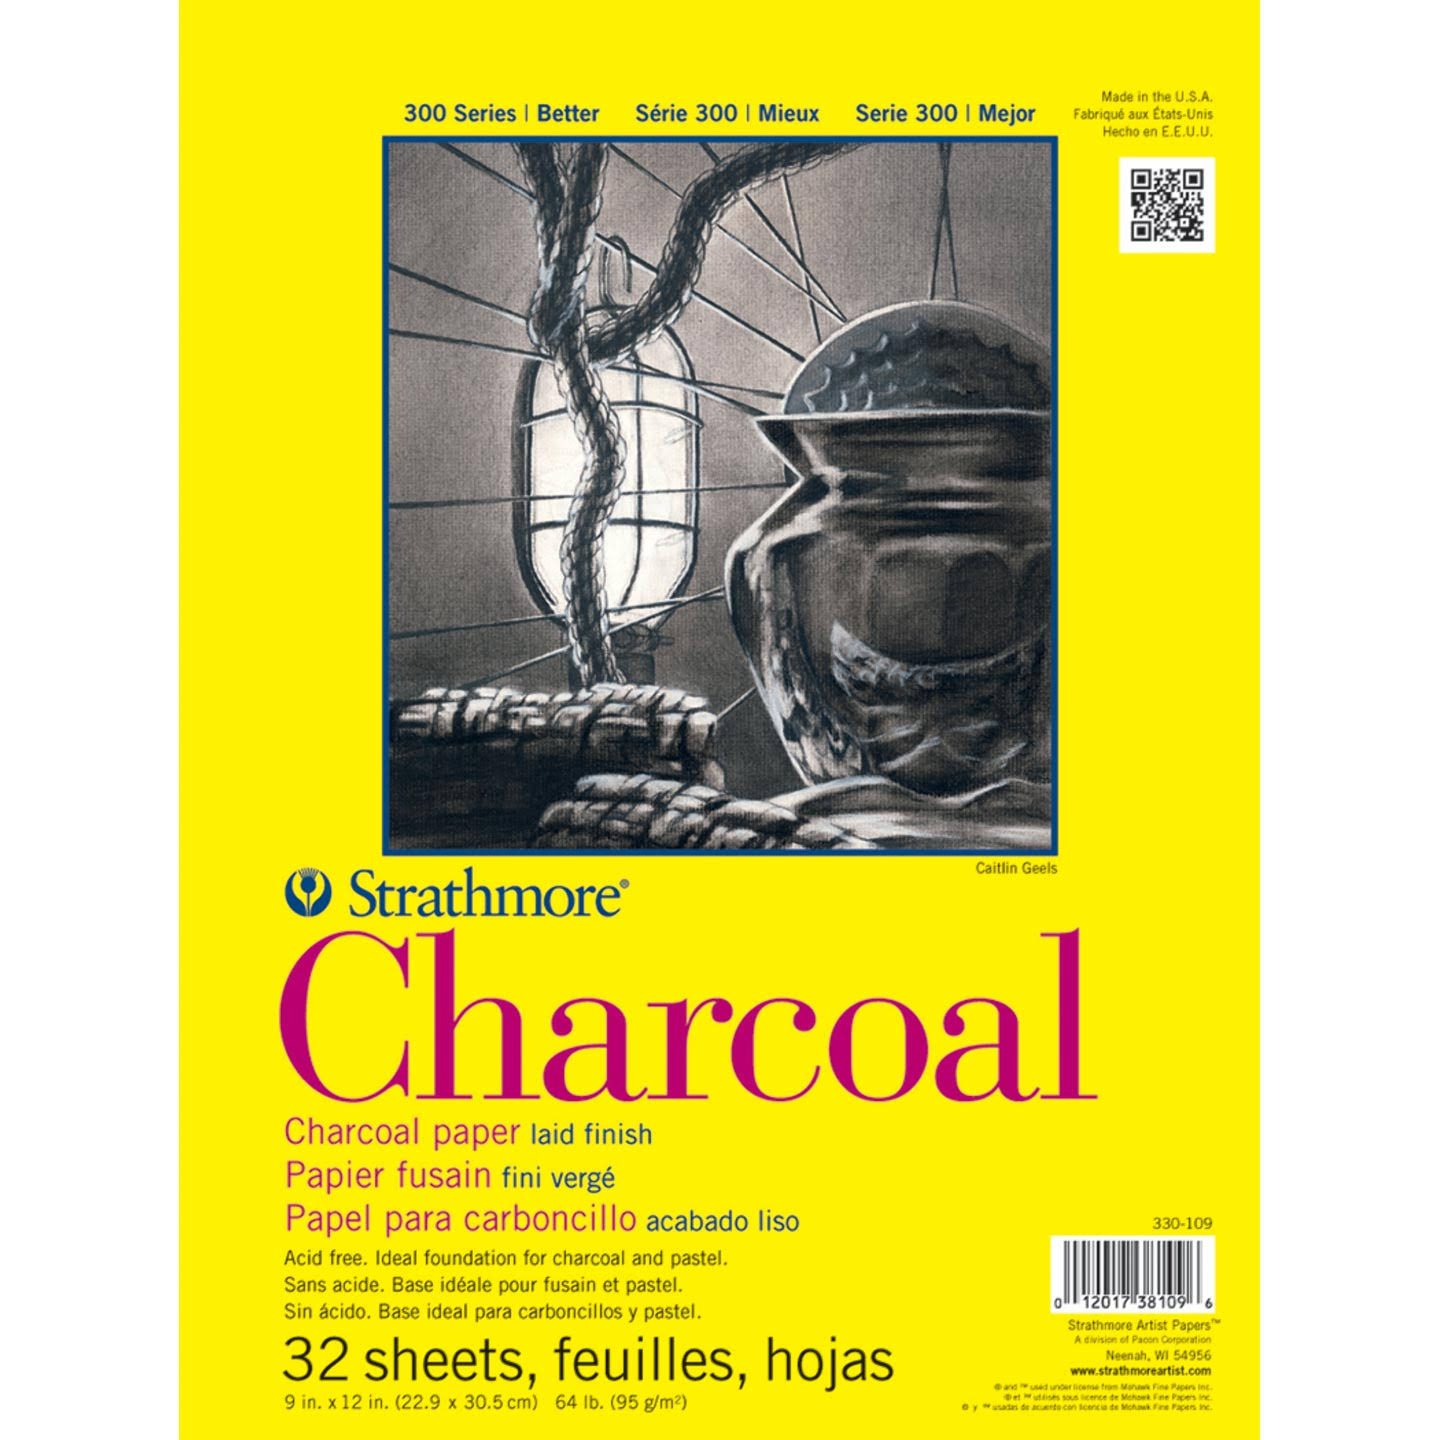 "Strathmore Charcoal Drawing Paper - 9"" x 12"", 32 Sheets, 64lb"